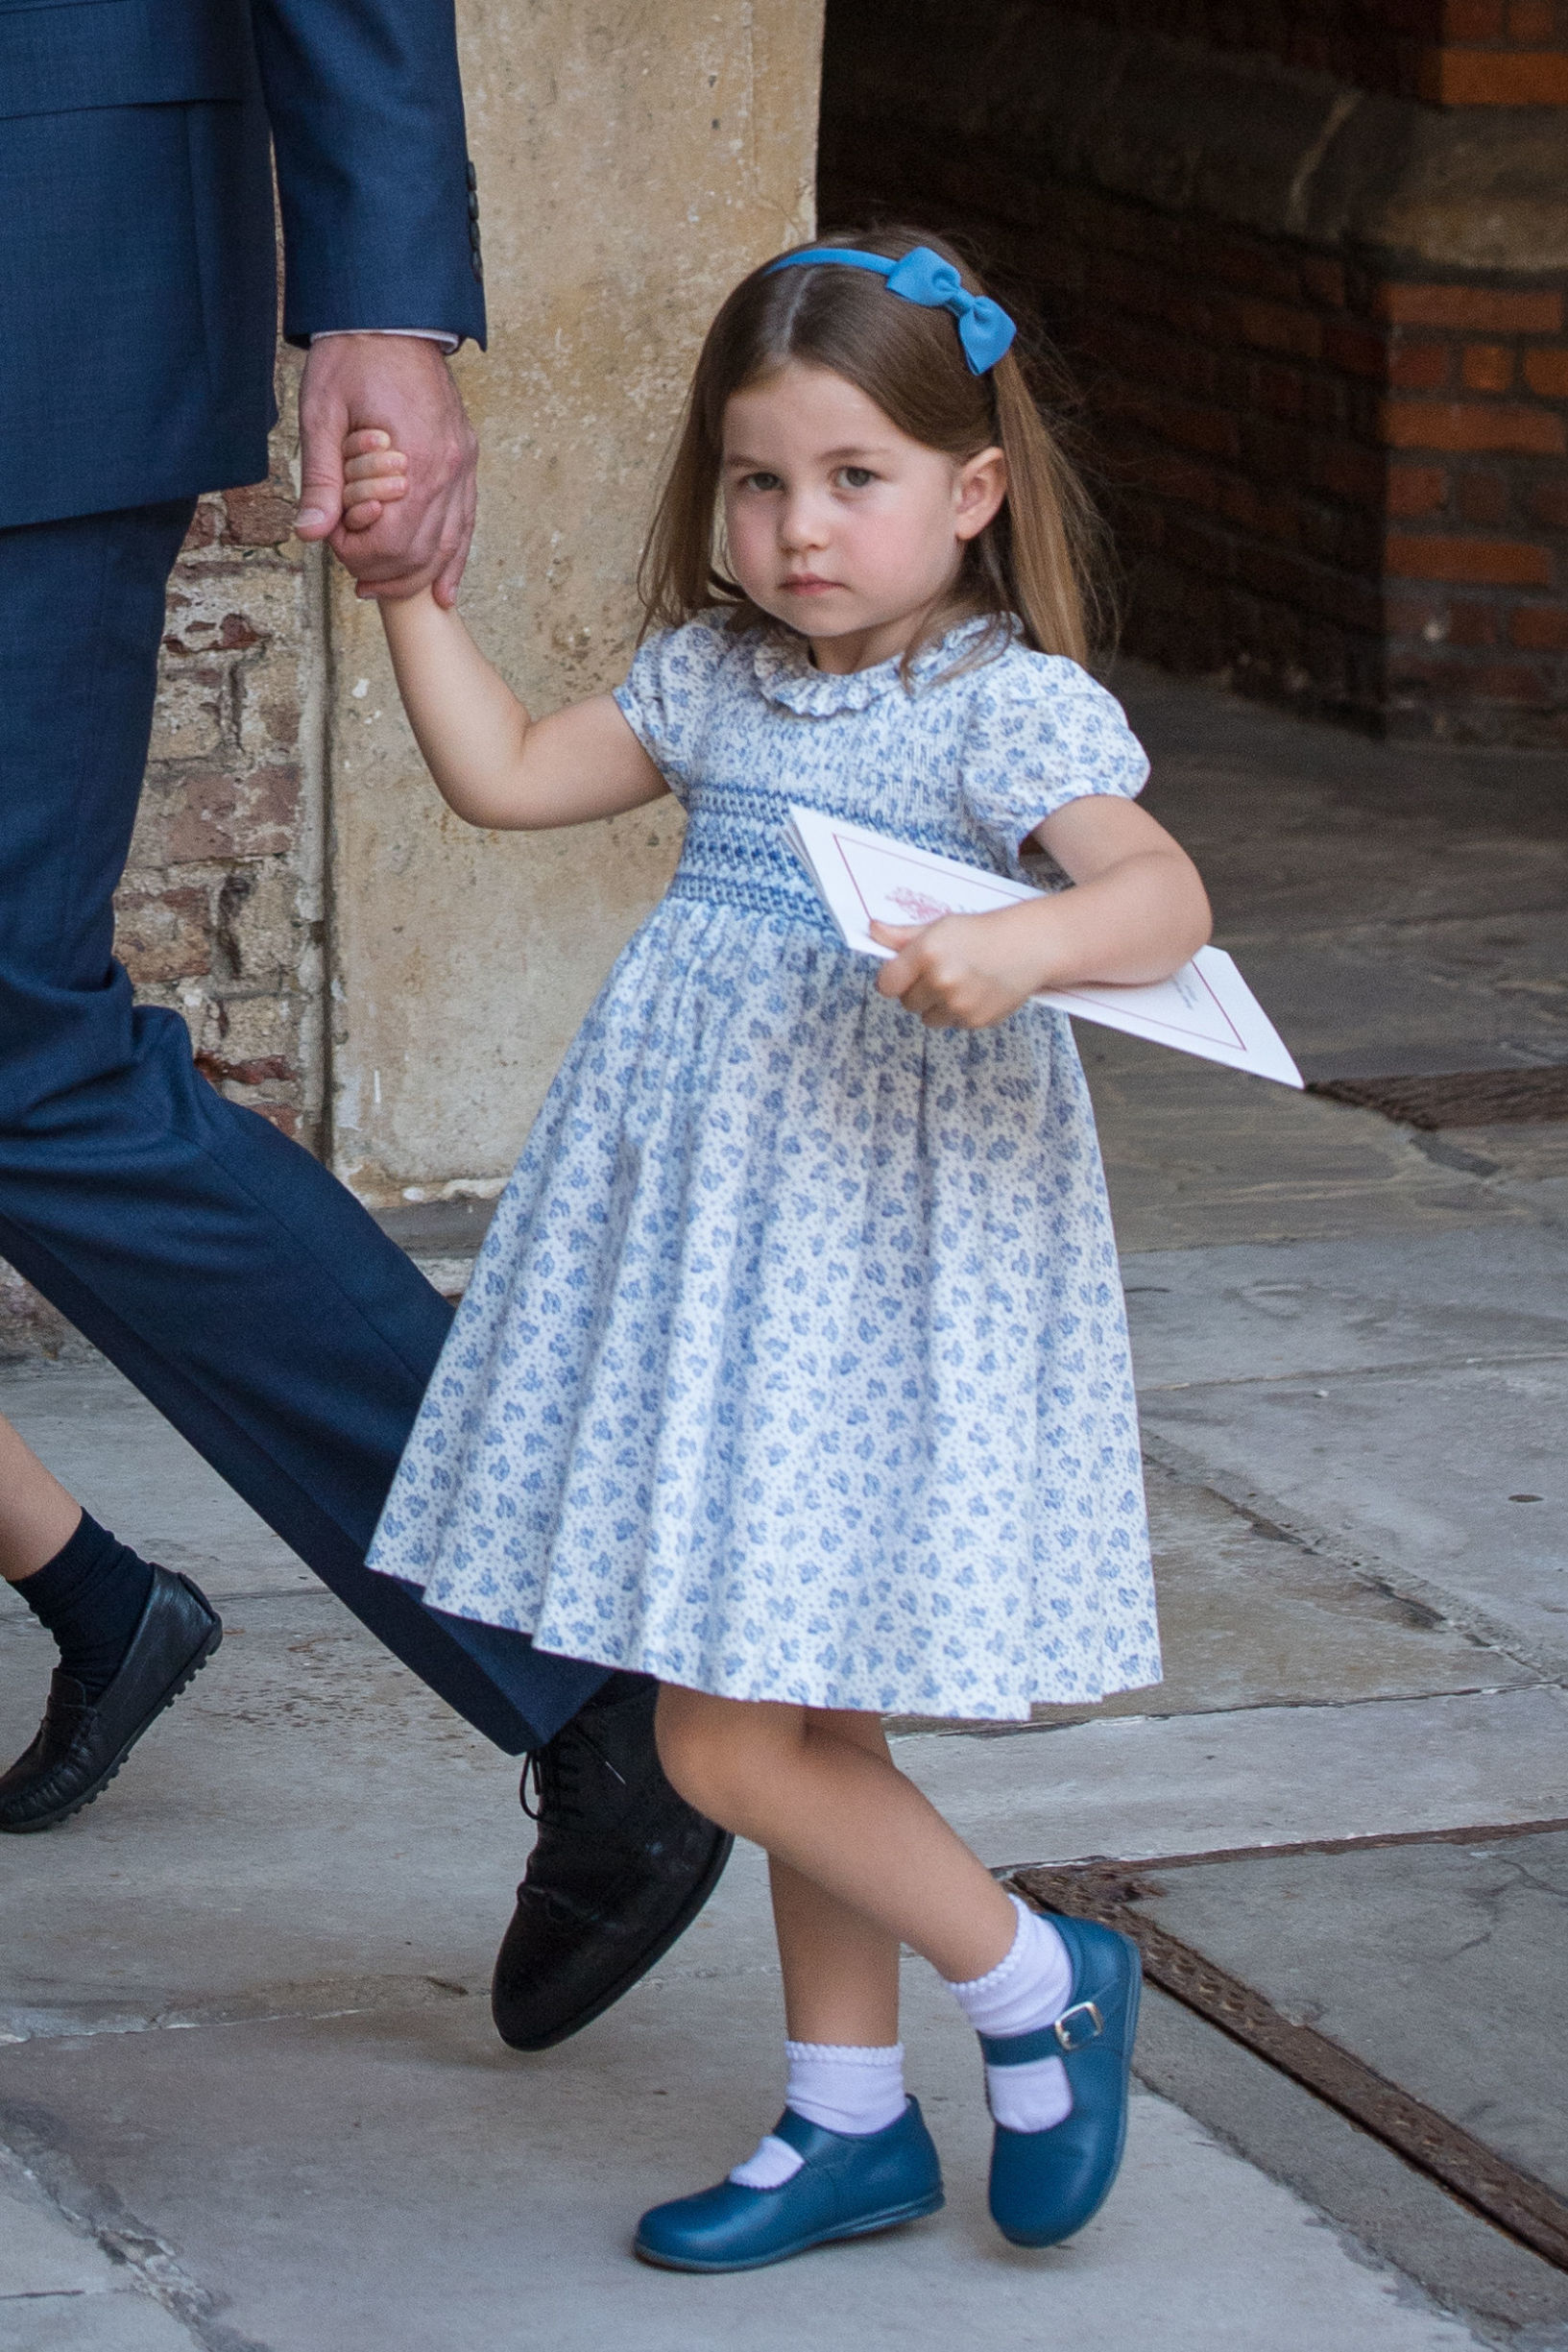 LONDON, ENGLAND - JULY 09:  Princess Charlotte of Cambridge leaves after Prince Louis of Cambridge's christening at the Chapel Royal, St James's Palace, London on July 09, 2018 in London, England. (Photo by Dominic Lipinski - WPA Pool/Getty Images)